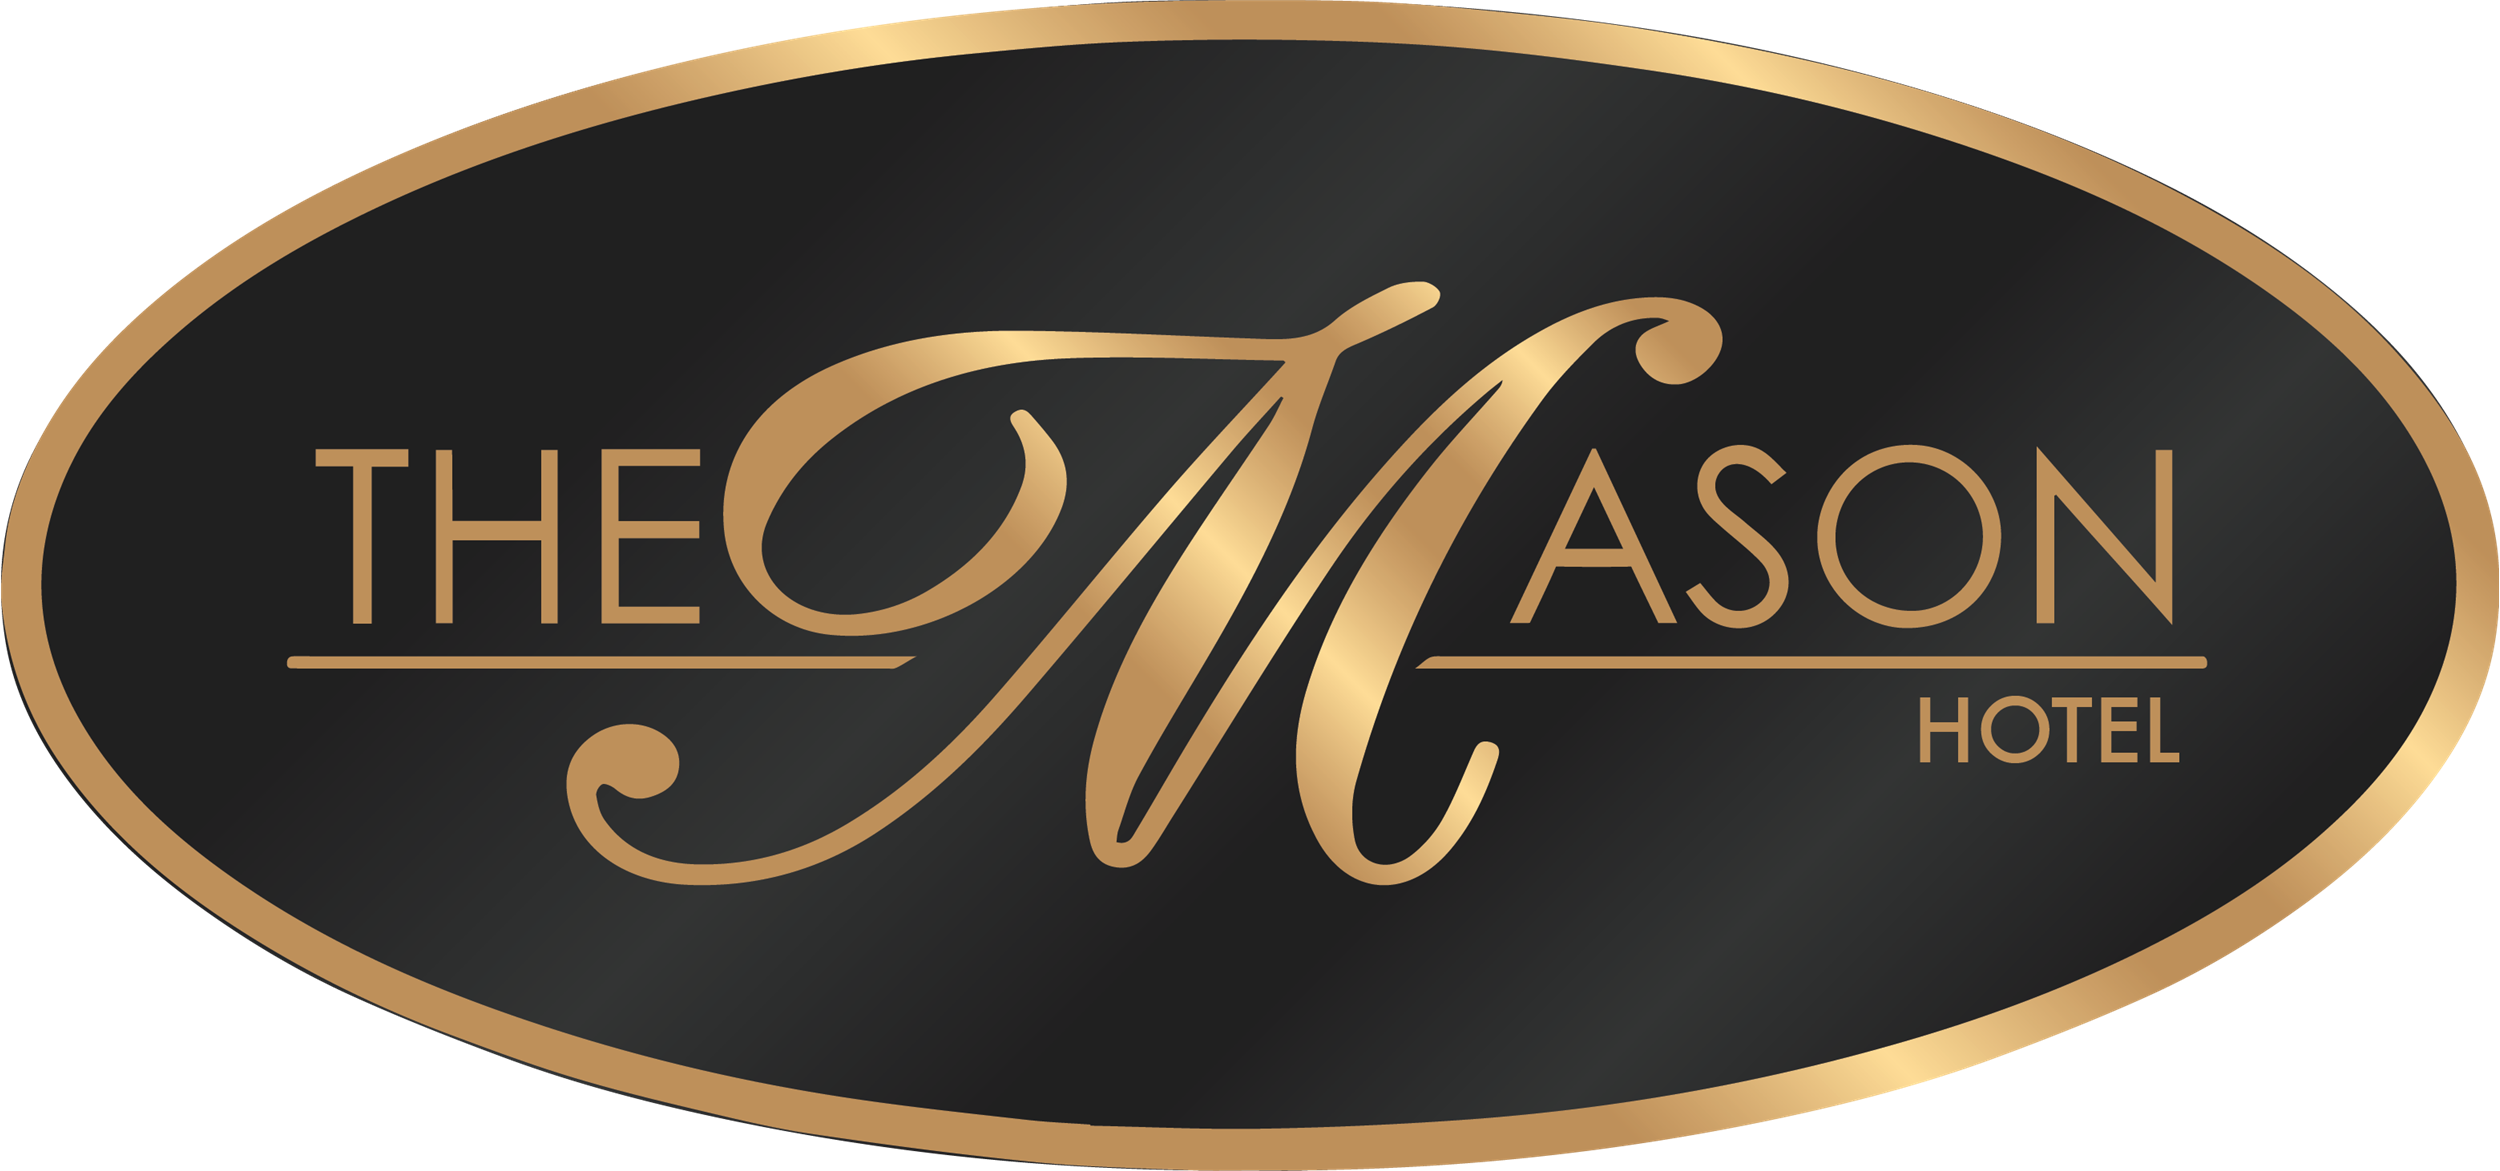 The Mason Logo -- The Mason in Gold lettering on a background of black